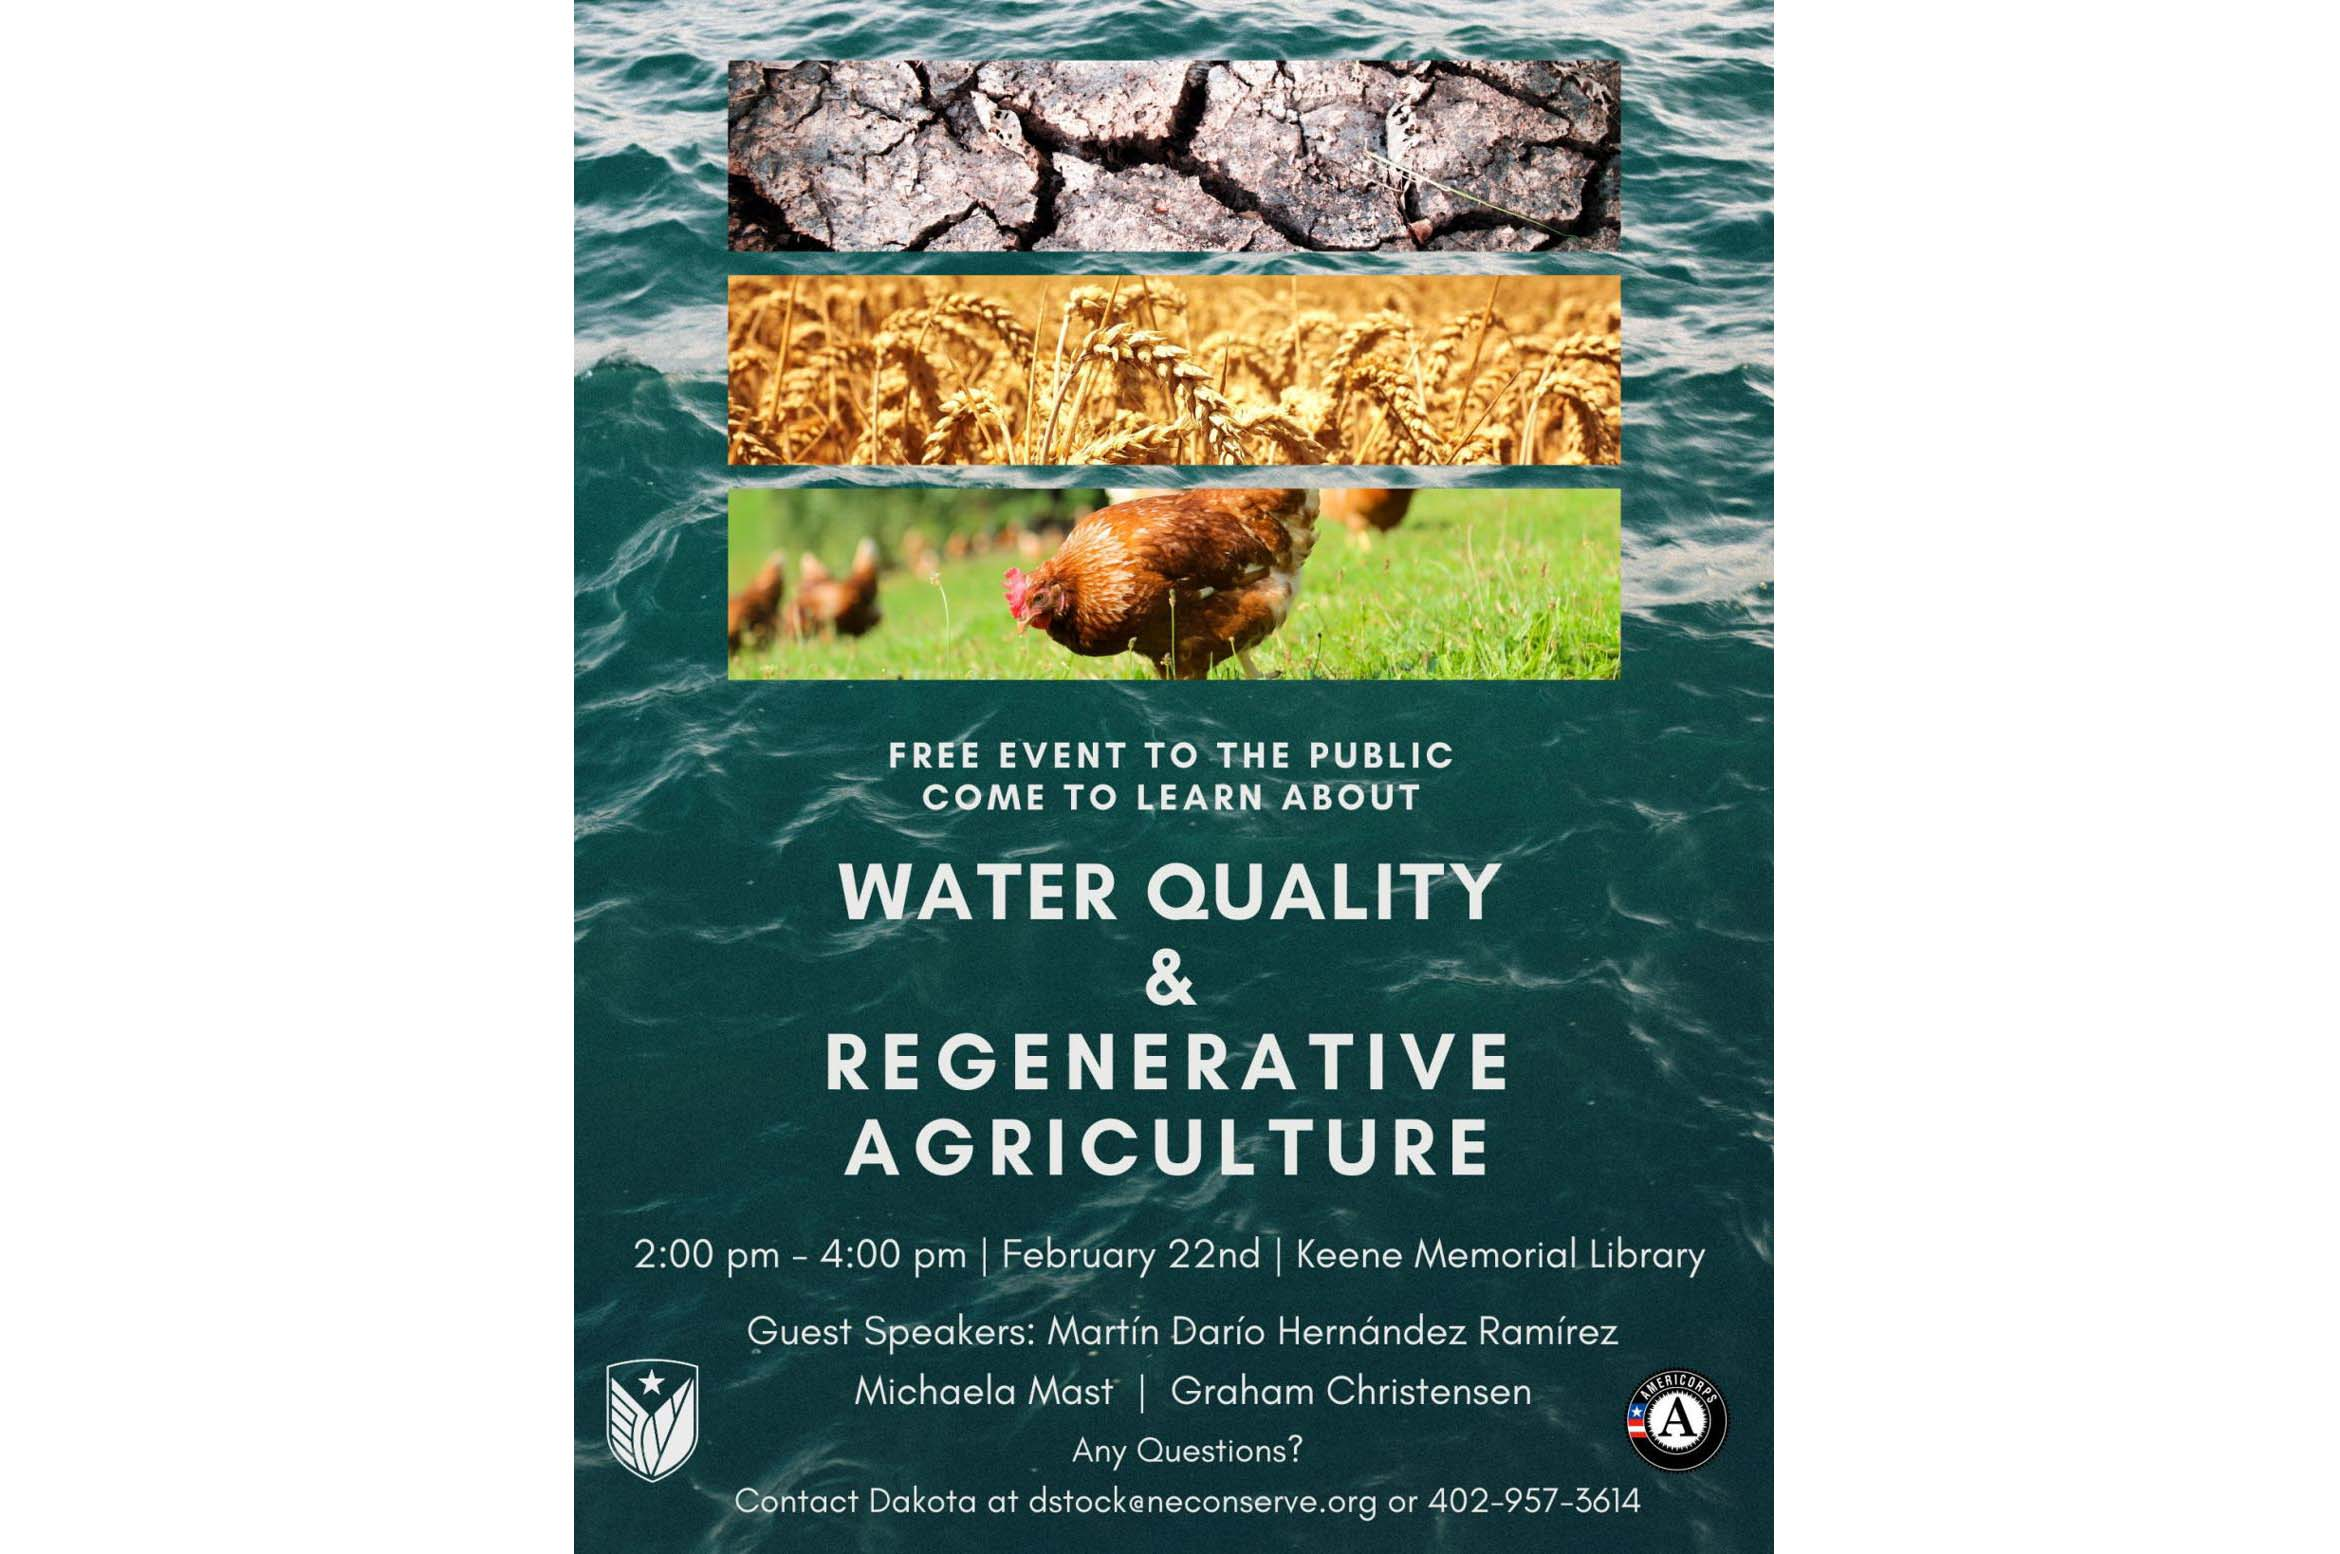 Conservation Nebraska event to focus on regenerative agriculture